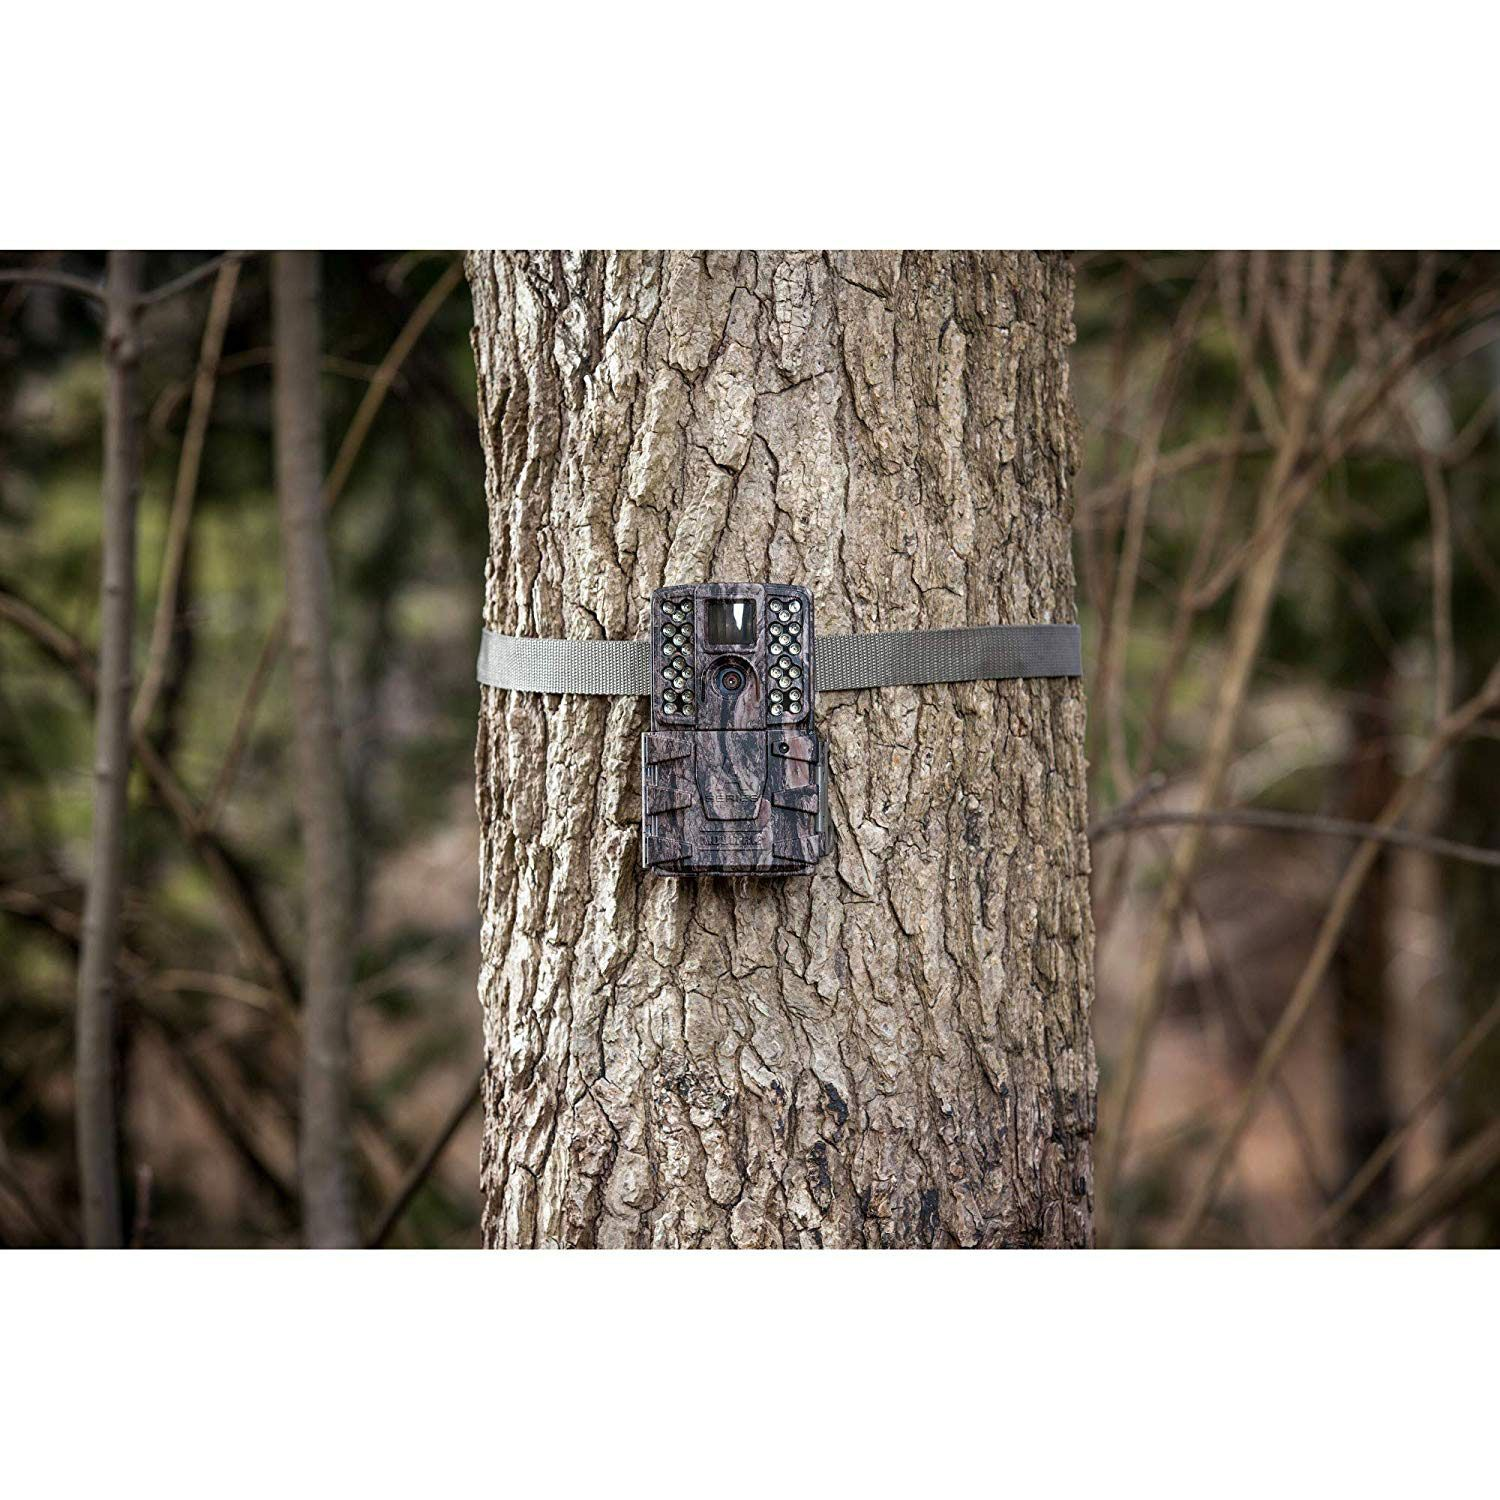 These Moultrie Game Camera Reviews Discuss The A To Z About The Trail Camera Click On To It And Get The Details About Game Cameras Camera Reviews Trail Camera